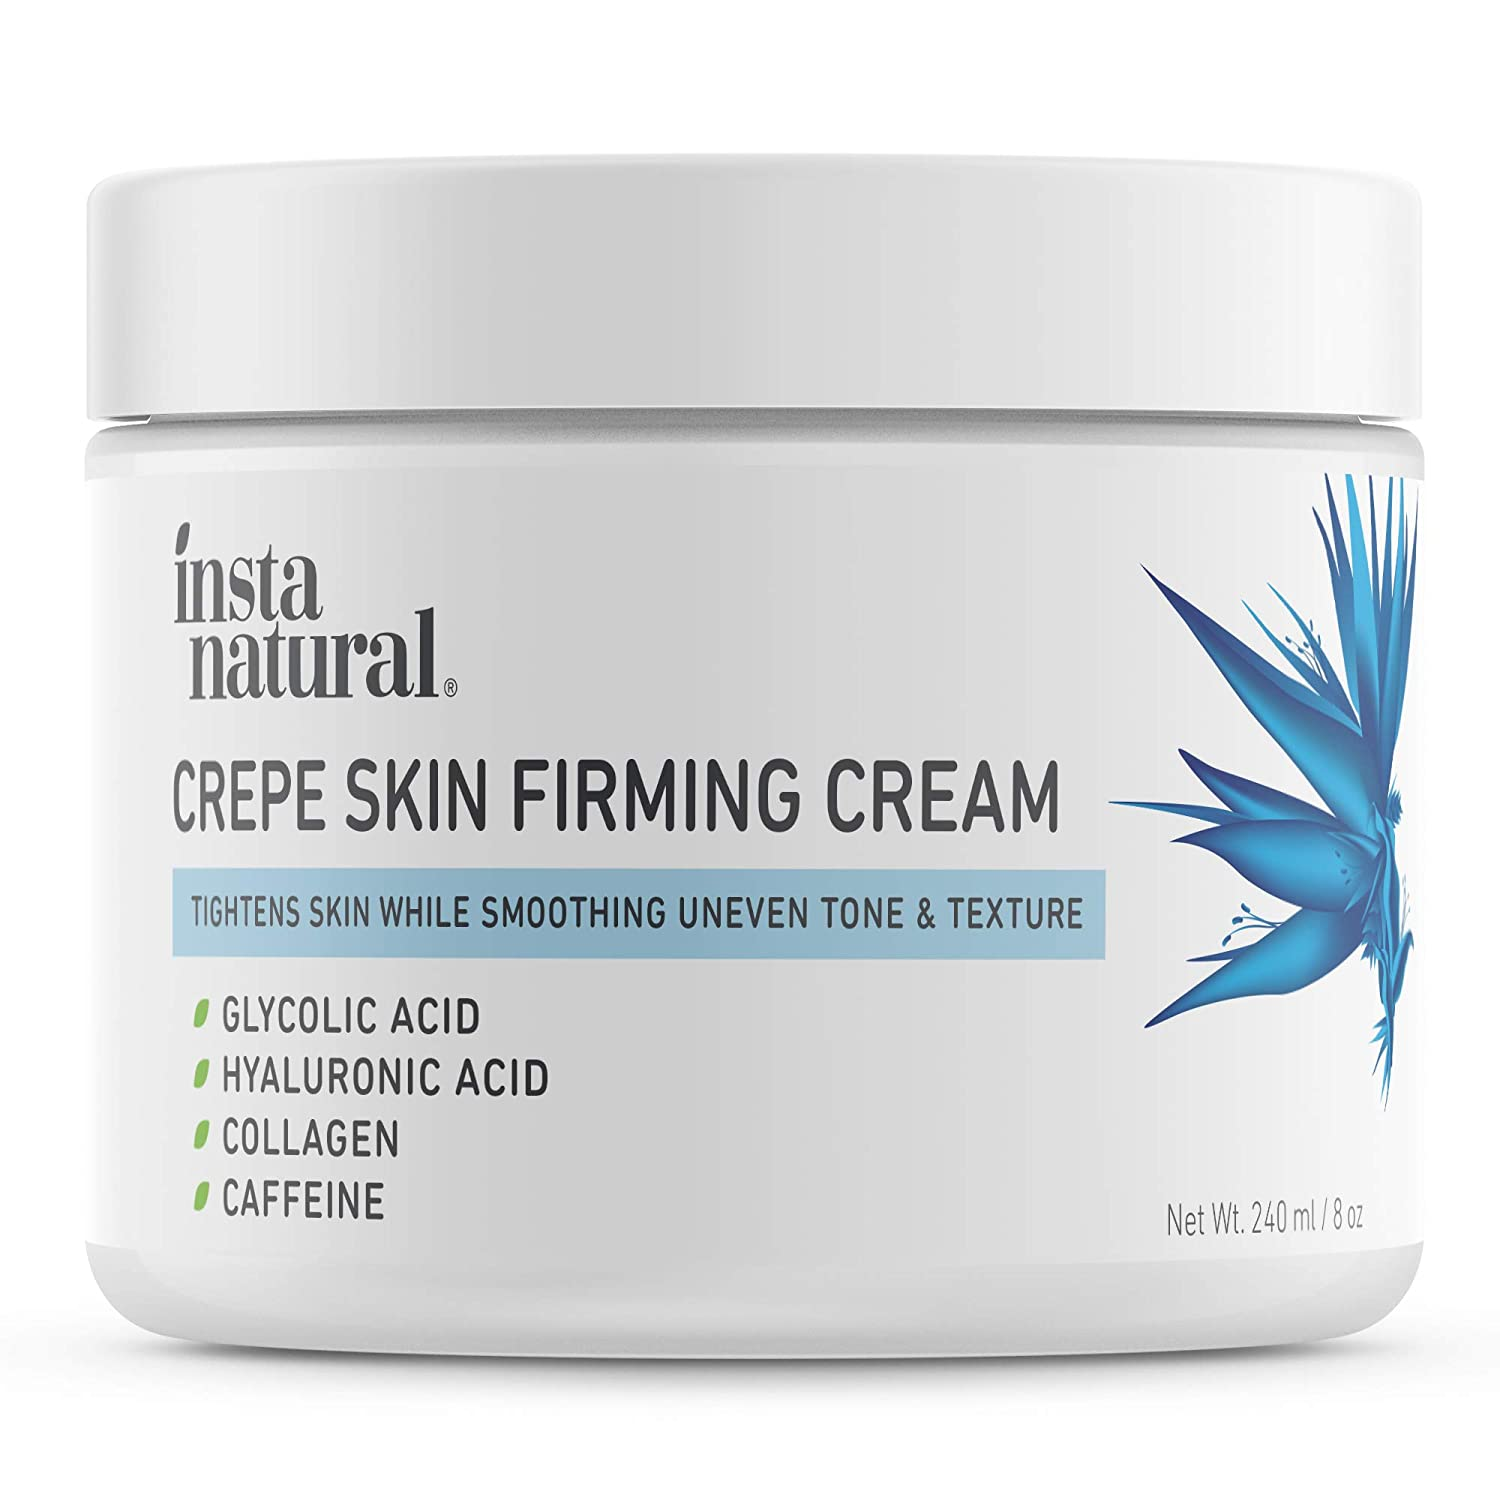 Crepe Firming Cream for Neck, Chest, Legs & Arms – Tightening & Lifting, Anti-Aging, Anti-Wrinkle, Collagen Skin Repair Treatment - Made With Hyaluronic Acid, Alpha Hydroxy & Caffeine – 8 oz: Beauty